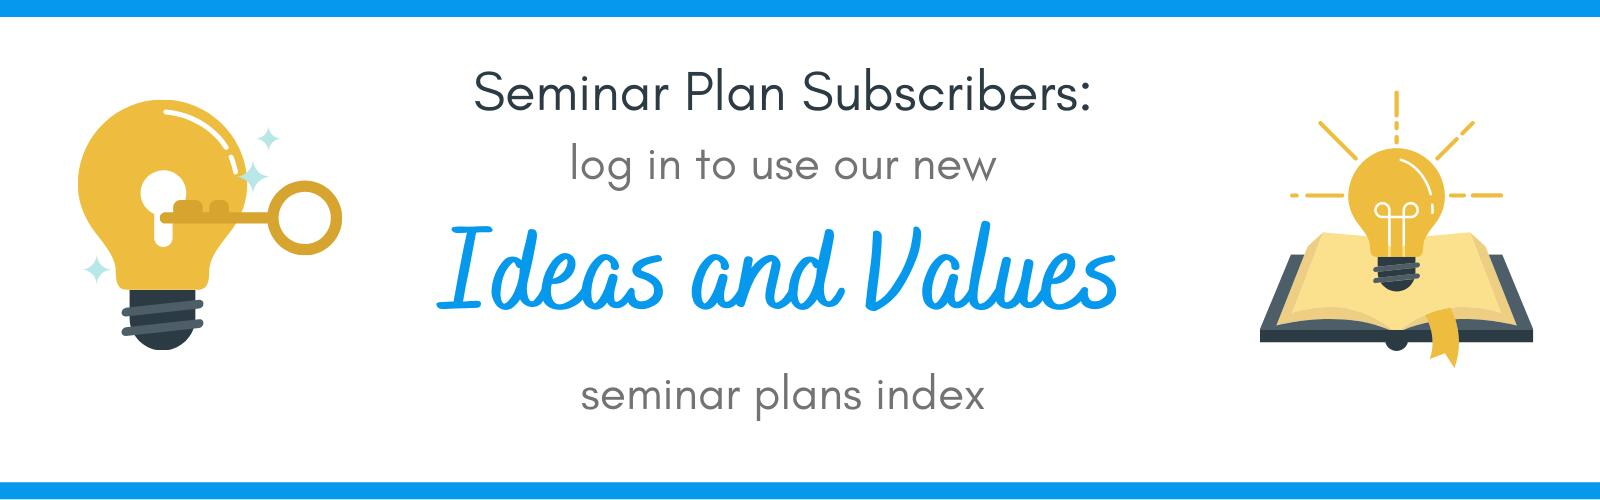 Text to advertise our Ideas and Values seminar plan index feature